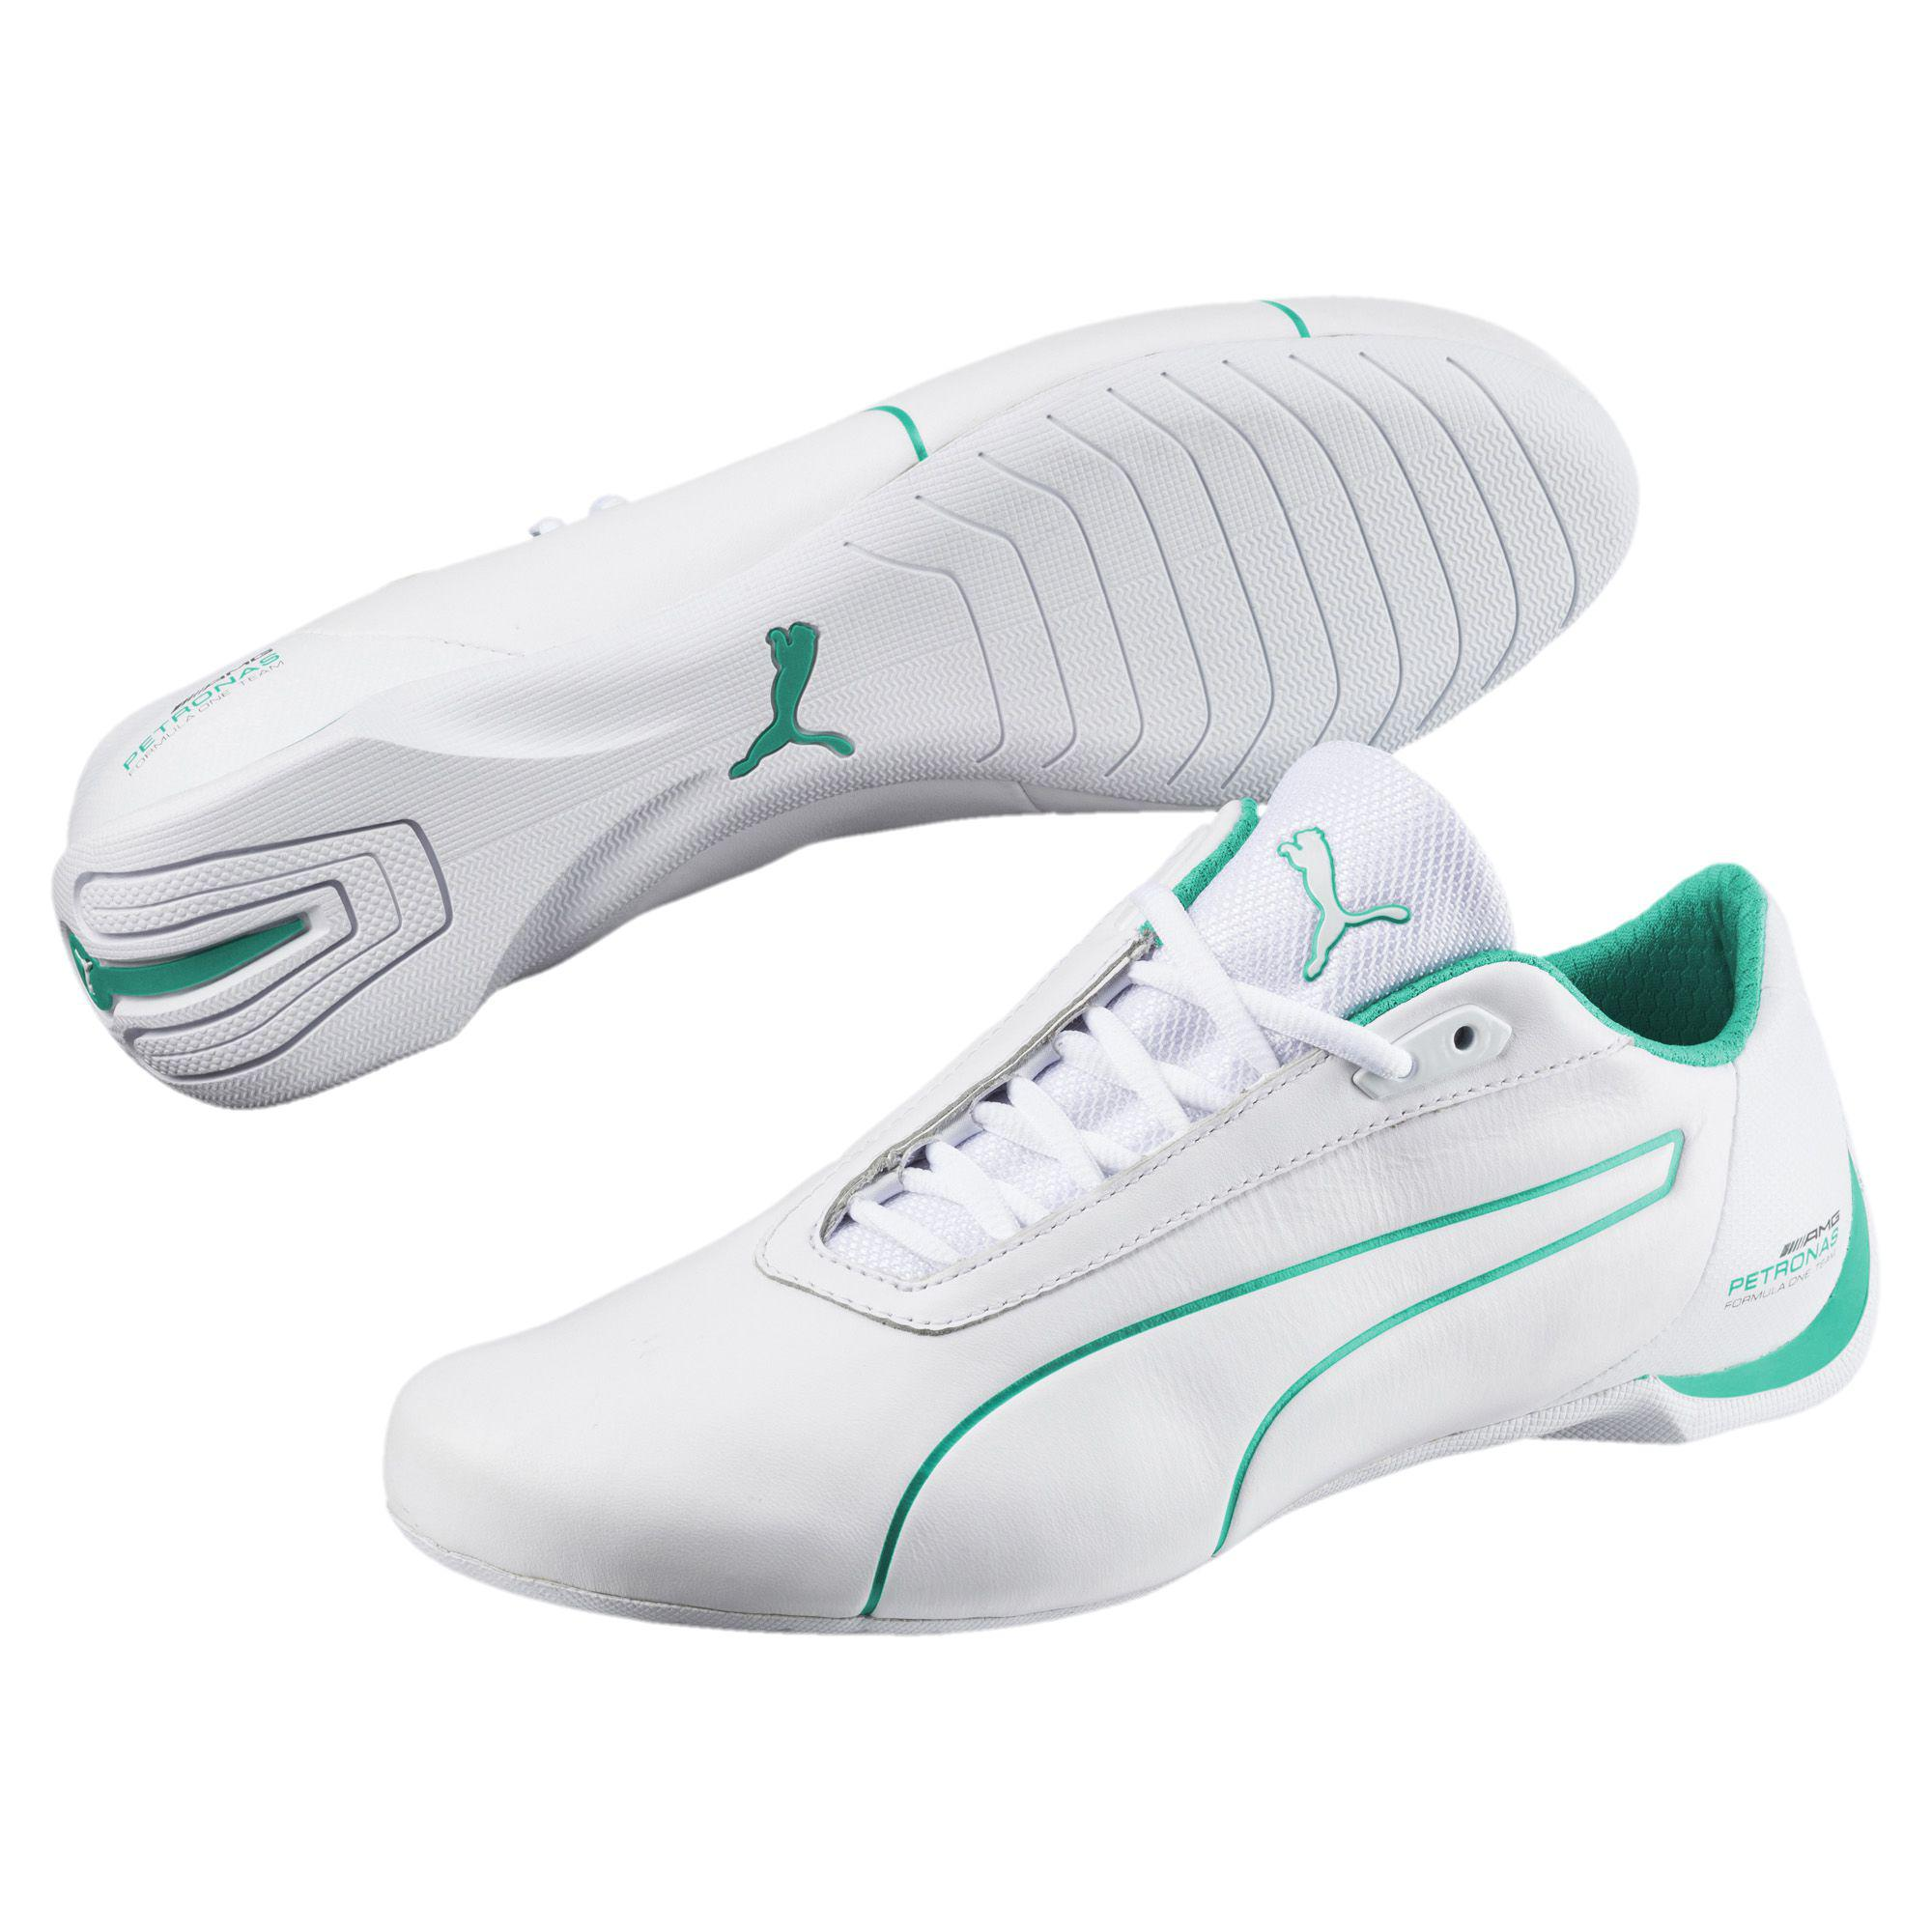 786f43787ff961 Lyst - PUMA Mercedes Amg Petronas Future Cat Shoes in White for Men